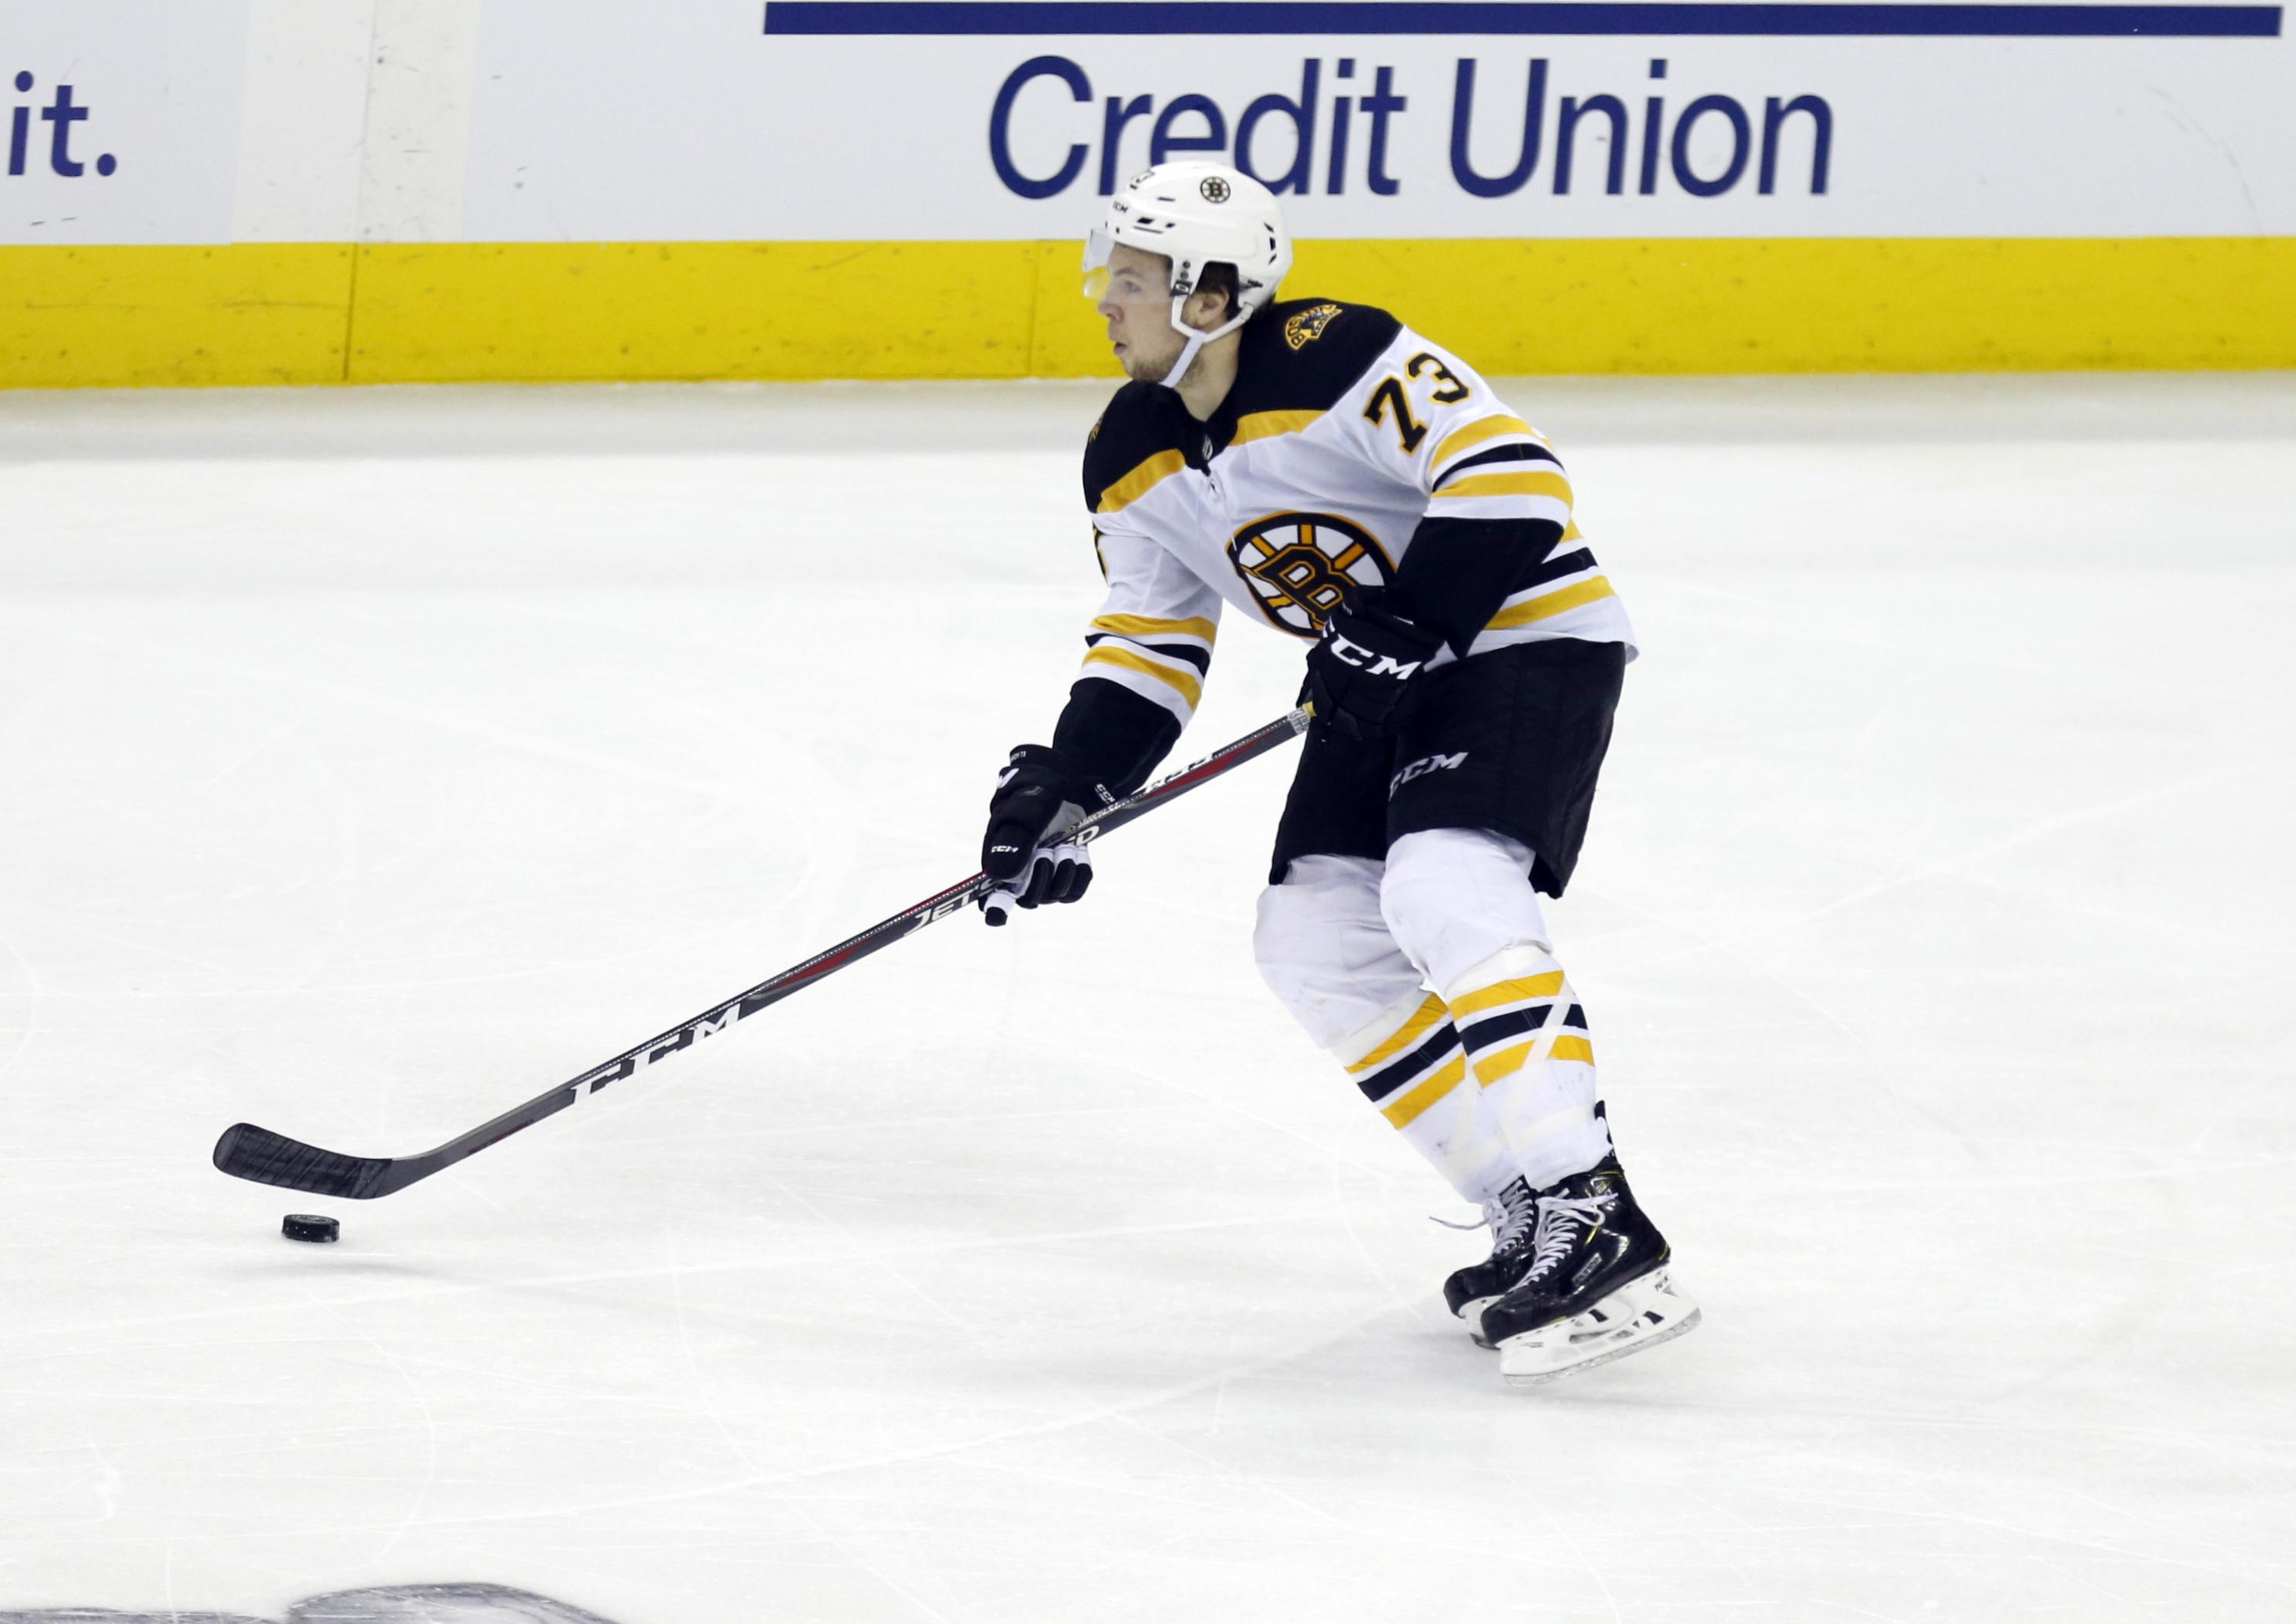 newest 4c48f 17247 Bruins' Charlie McAvoy will have to wait to make East finals ...